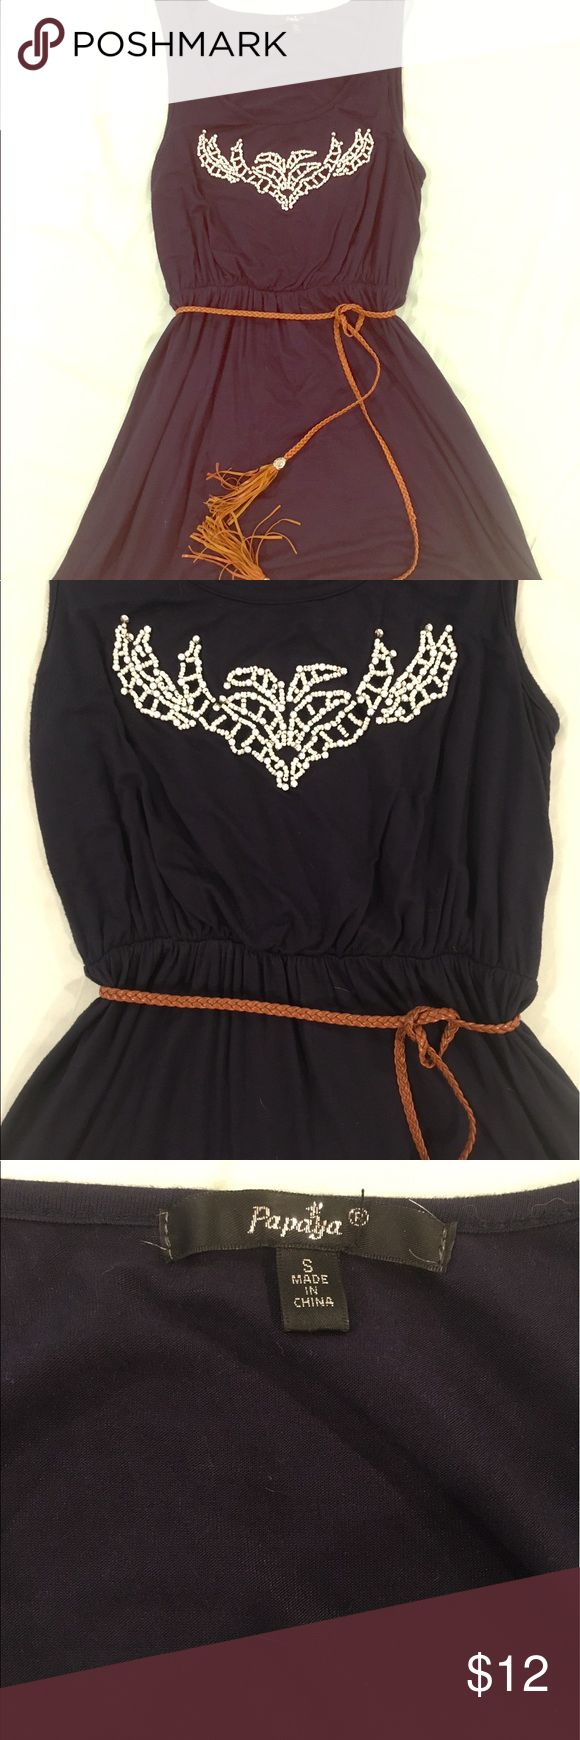 Navy Dress This is a great summer dress! It has white bead work on the front with a brown tie belt!! It looks amazing with cowgirl boots for country concerts or with cute sandals for a date night out!! This is the perfect dress that always looks great!!! Papaya Dresses Mini